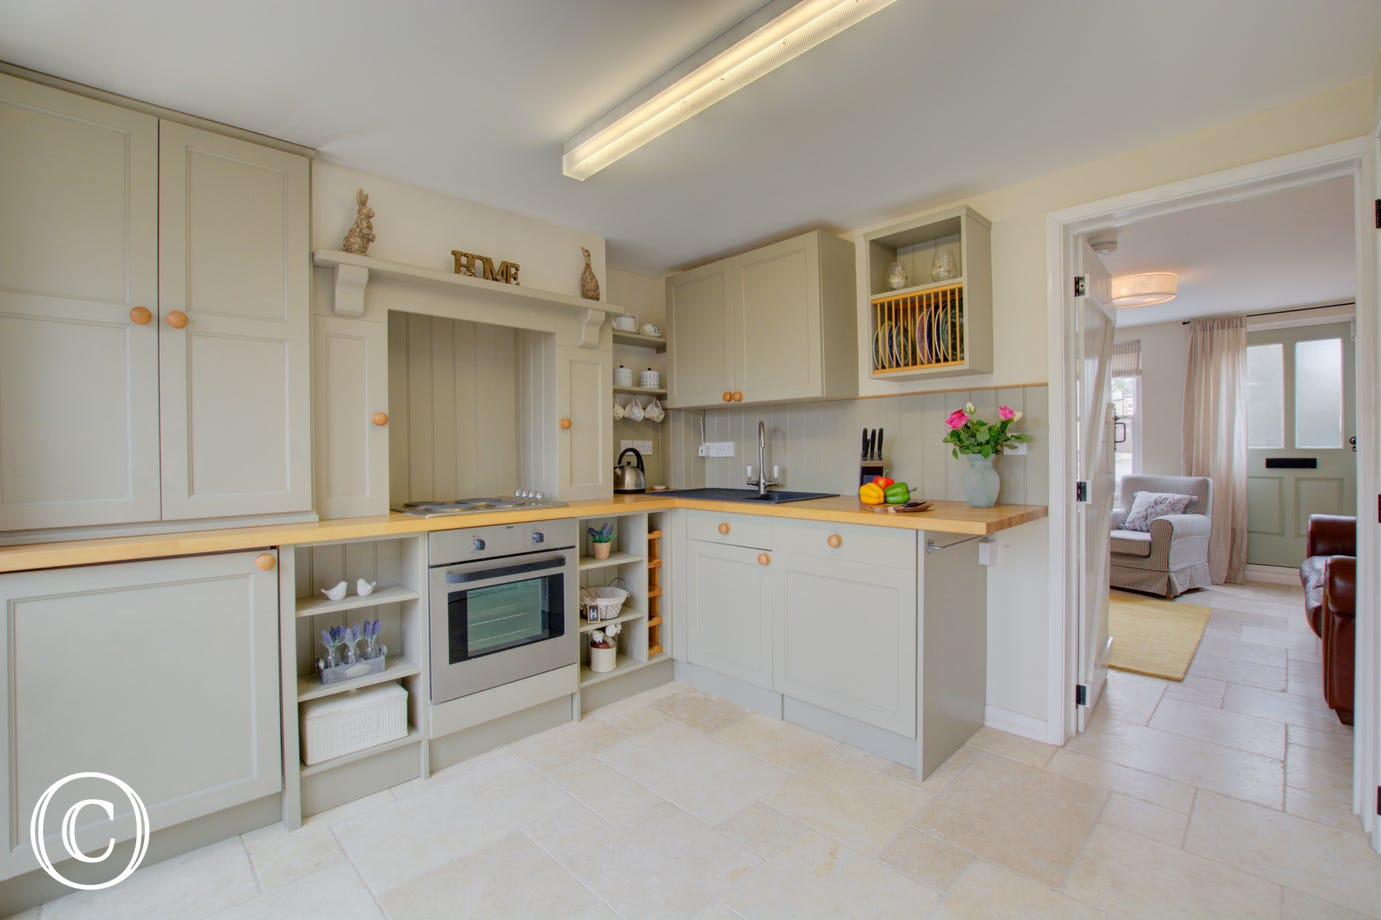 Kitchen with built in electric oven & hob